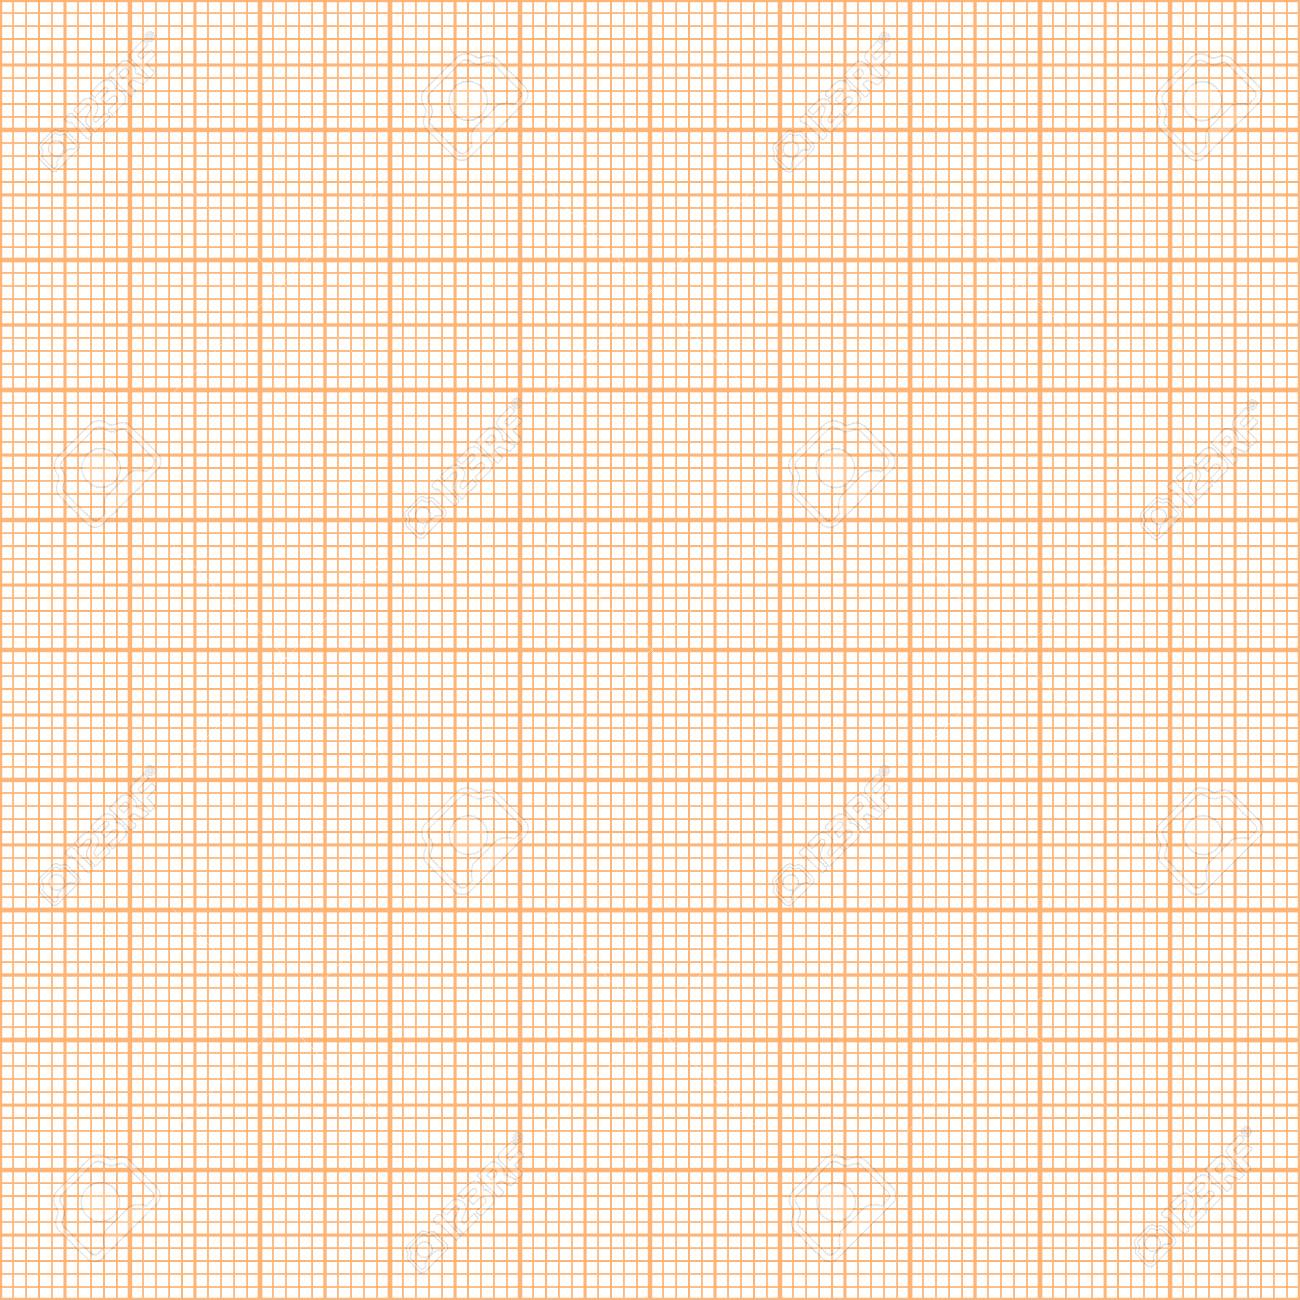 Vector orange metric graph paper seamless pattern, 1mm grid accented